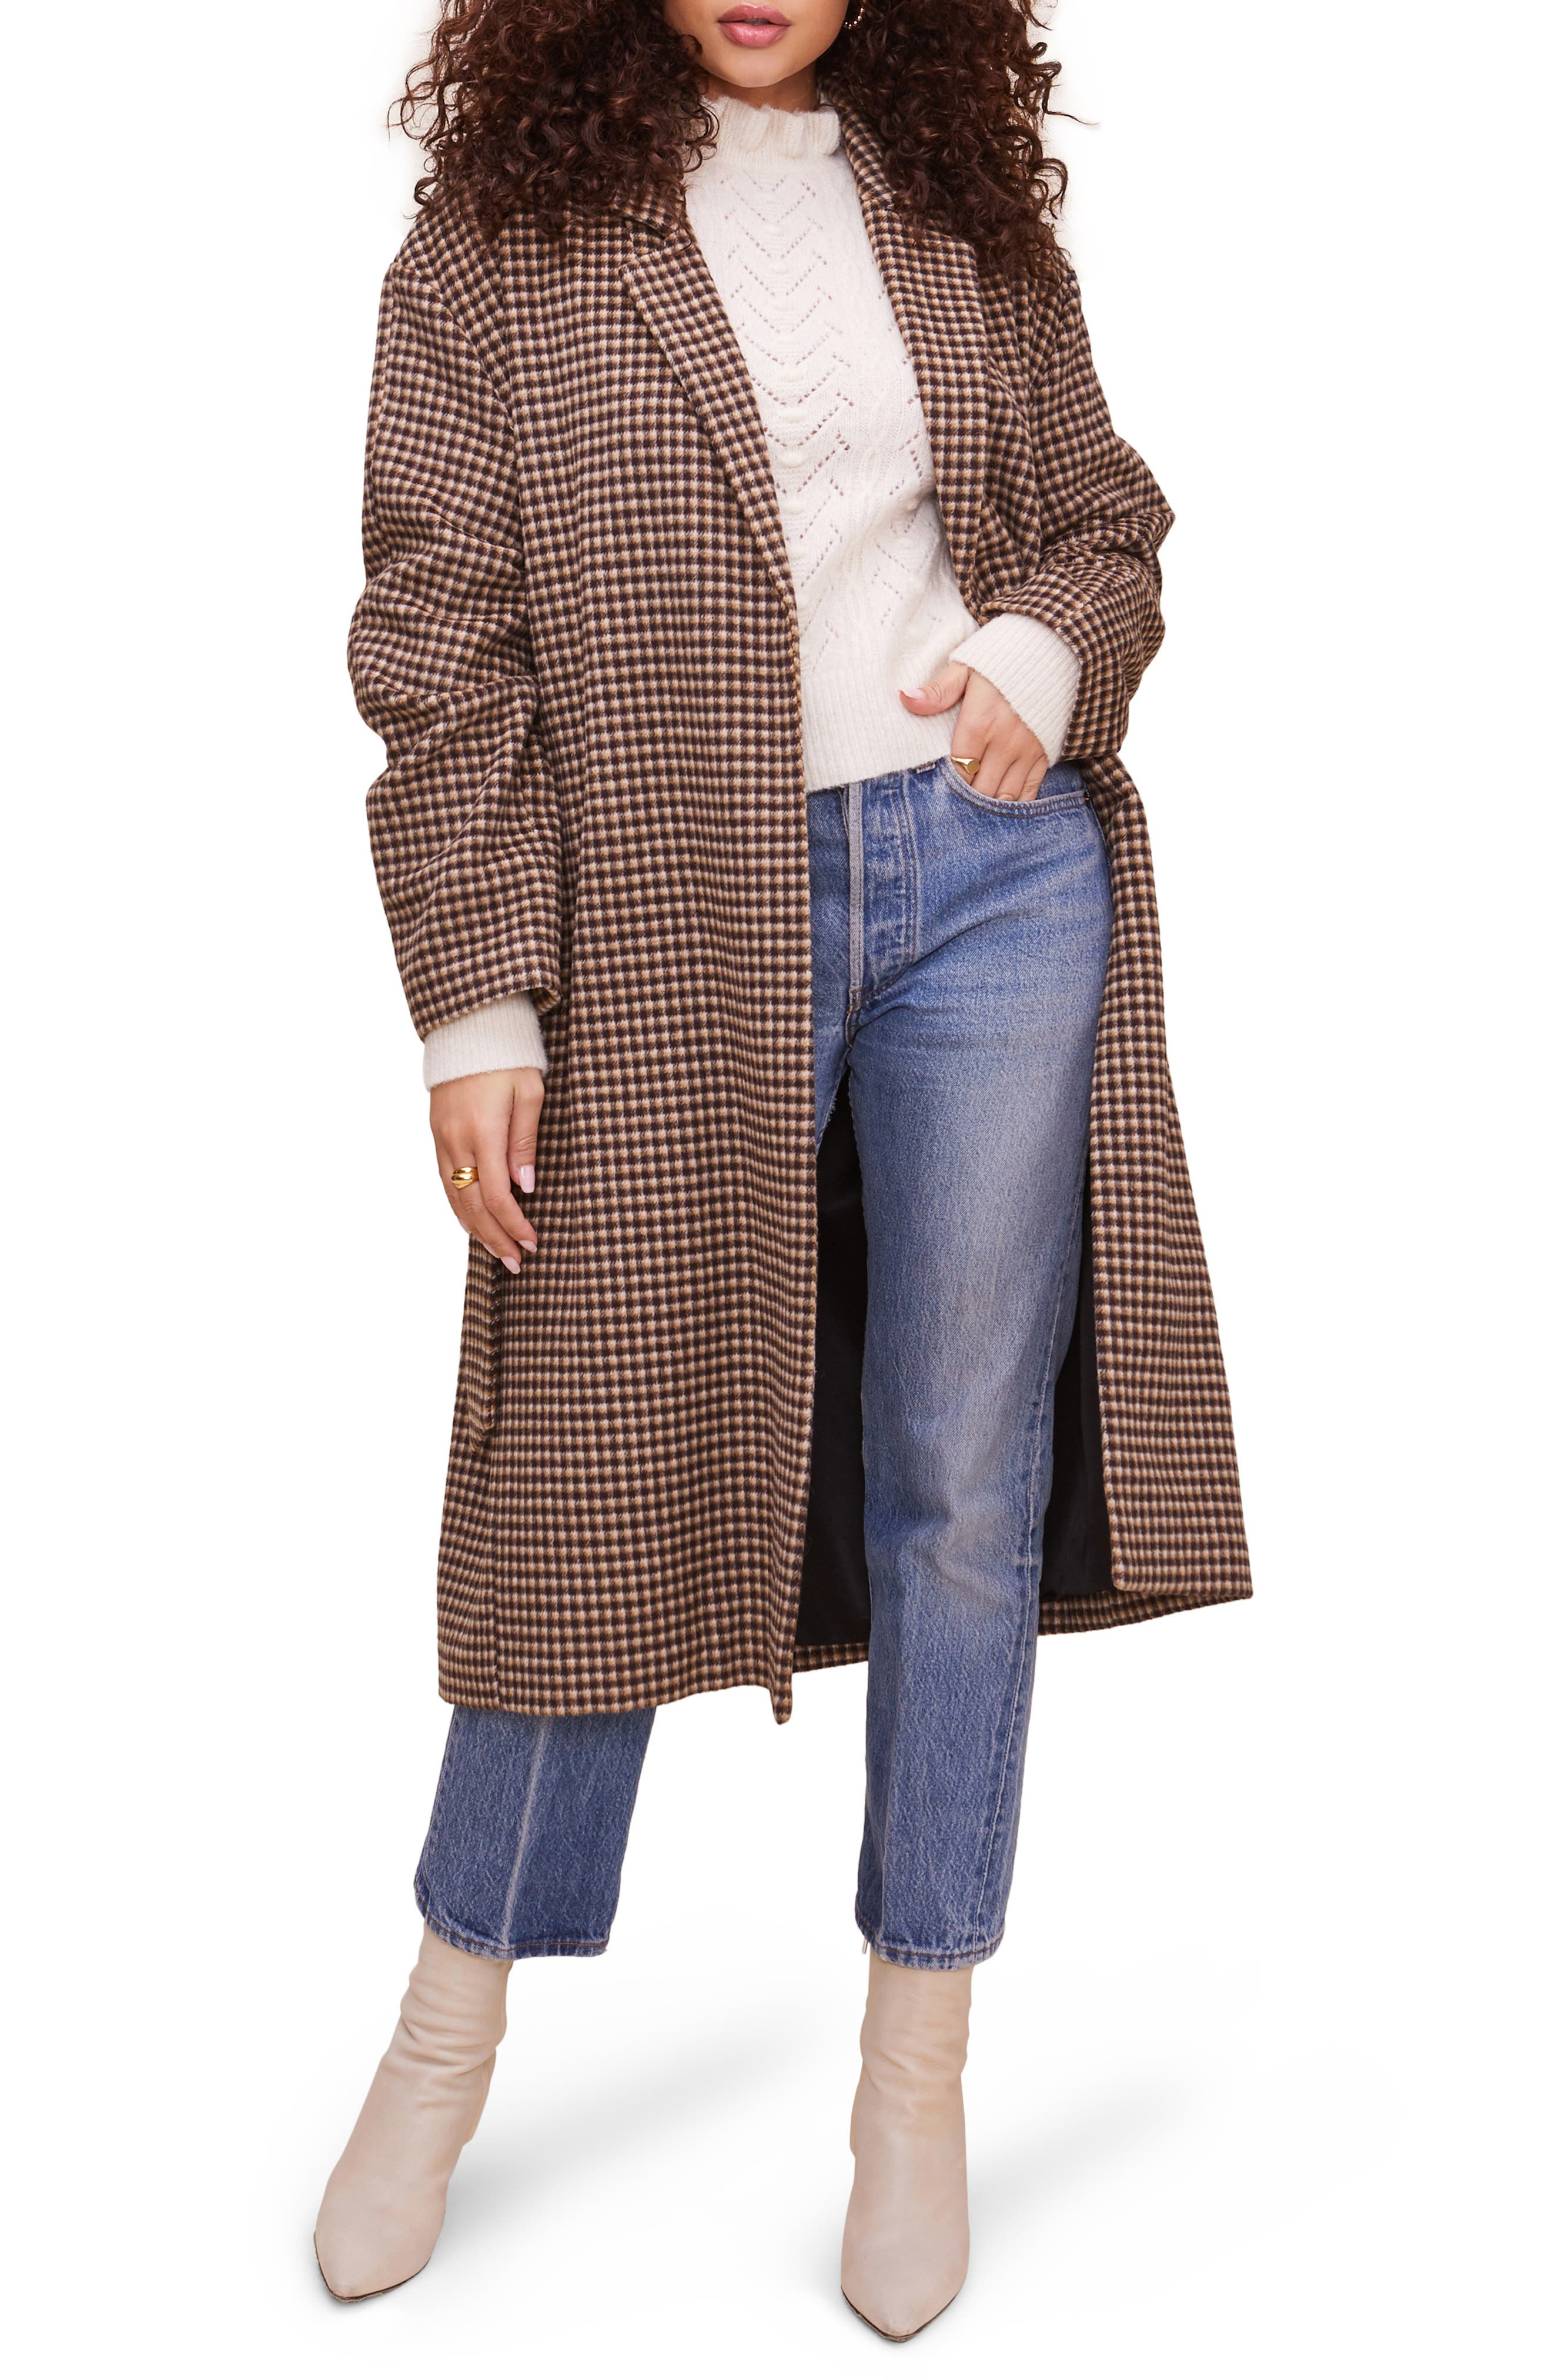 1940s Style Coats and Jackets for Sale Womens Astr The Label Roxanne Belted Coat Size Small - Brown $198.00 AT vintagedancer.com